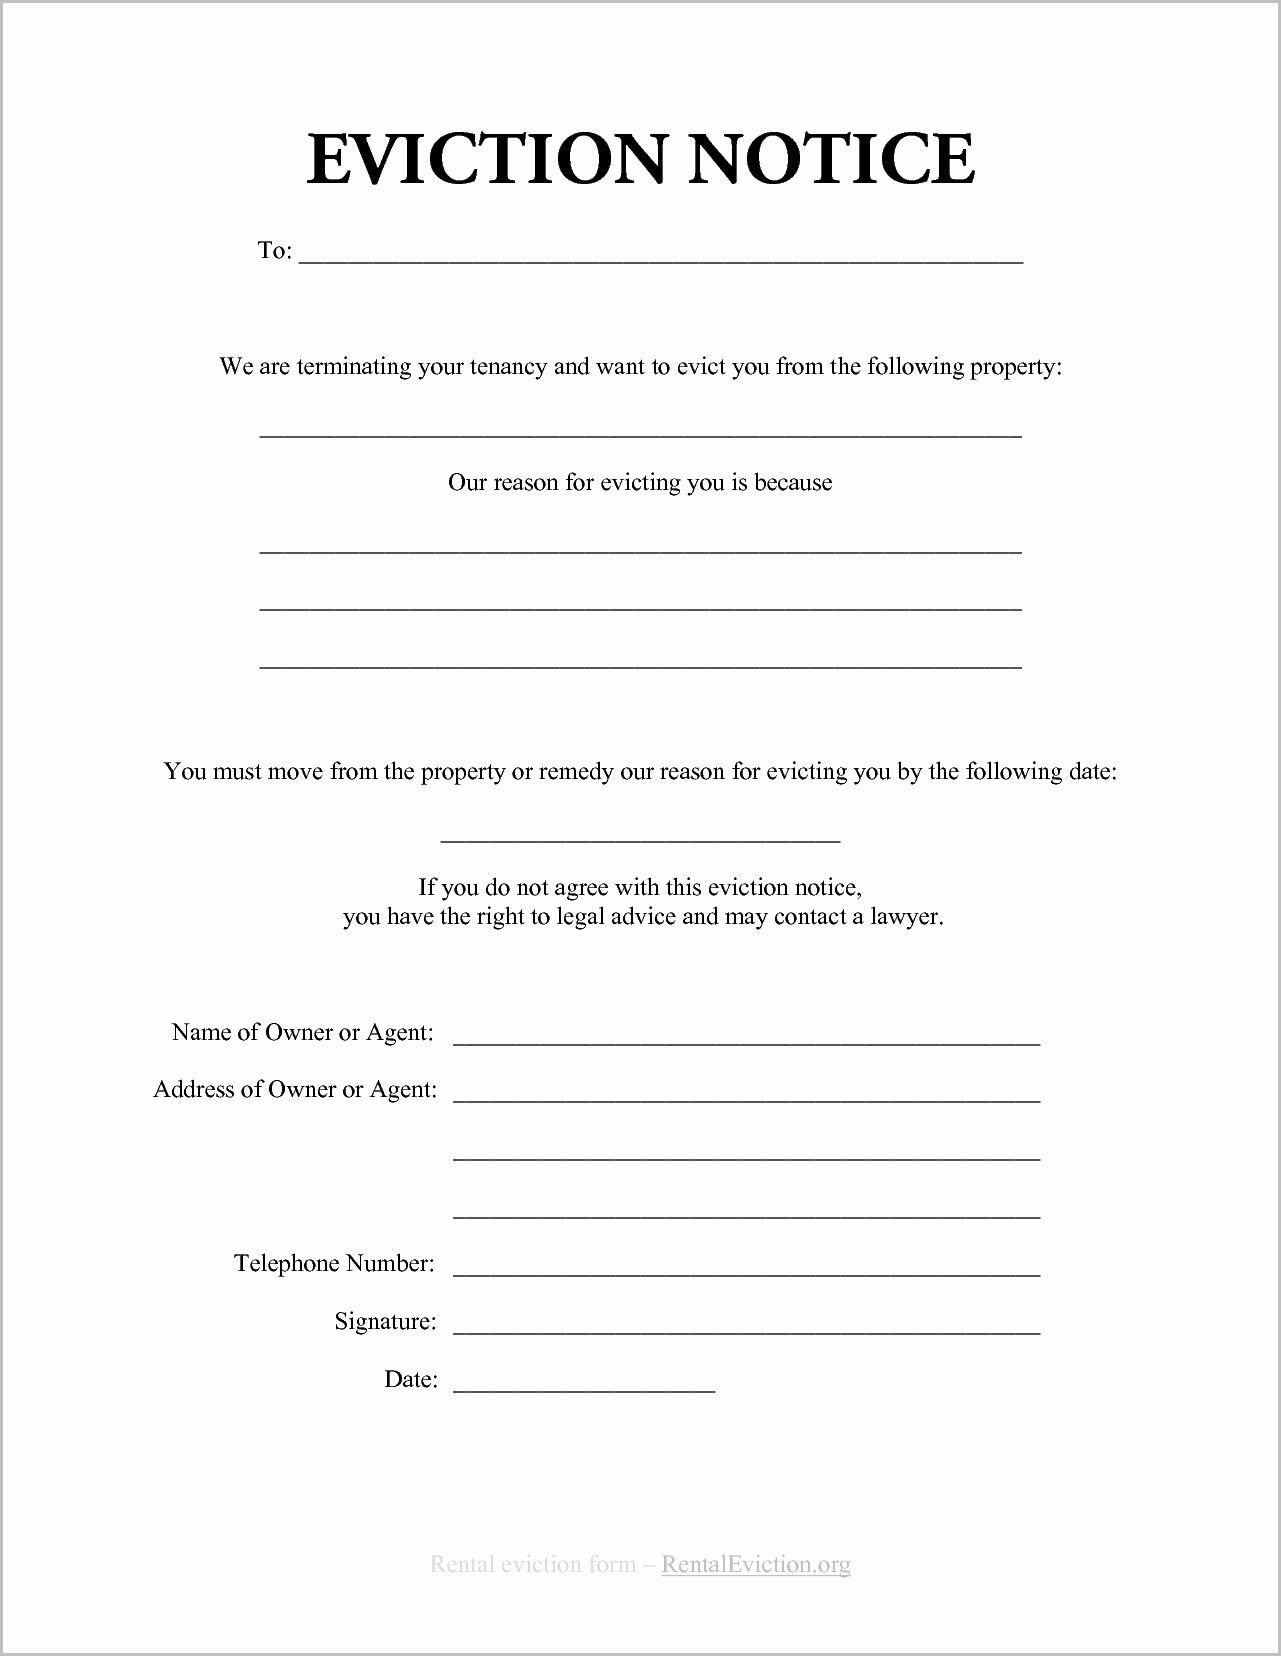 Notice Of Eviction Form Ontario | Forms | Eviction Notice, Resume - Free Printable Blank Eviction Notice